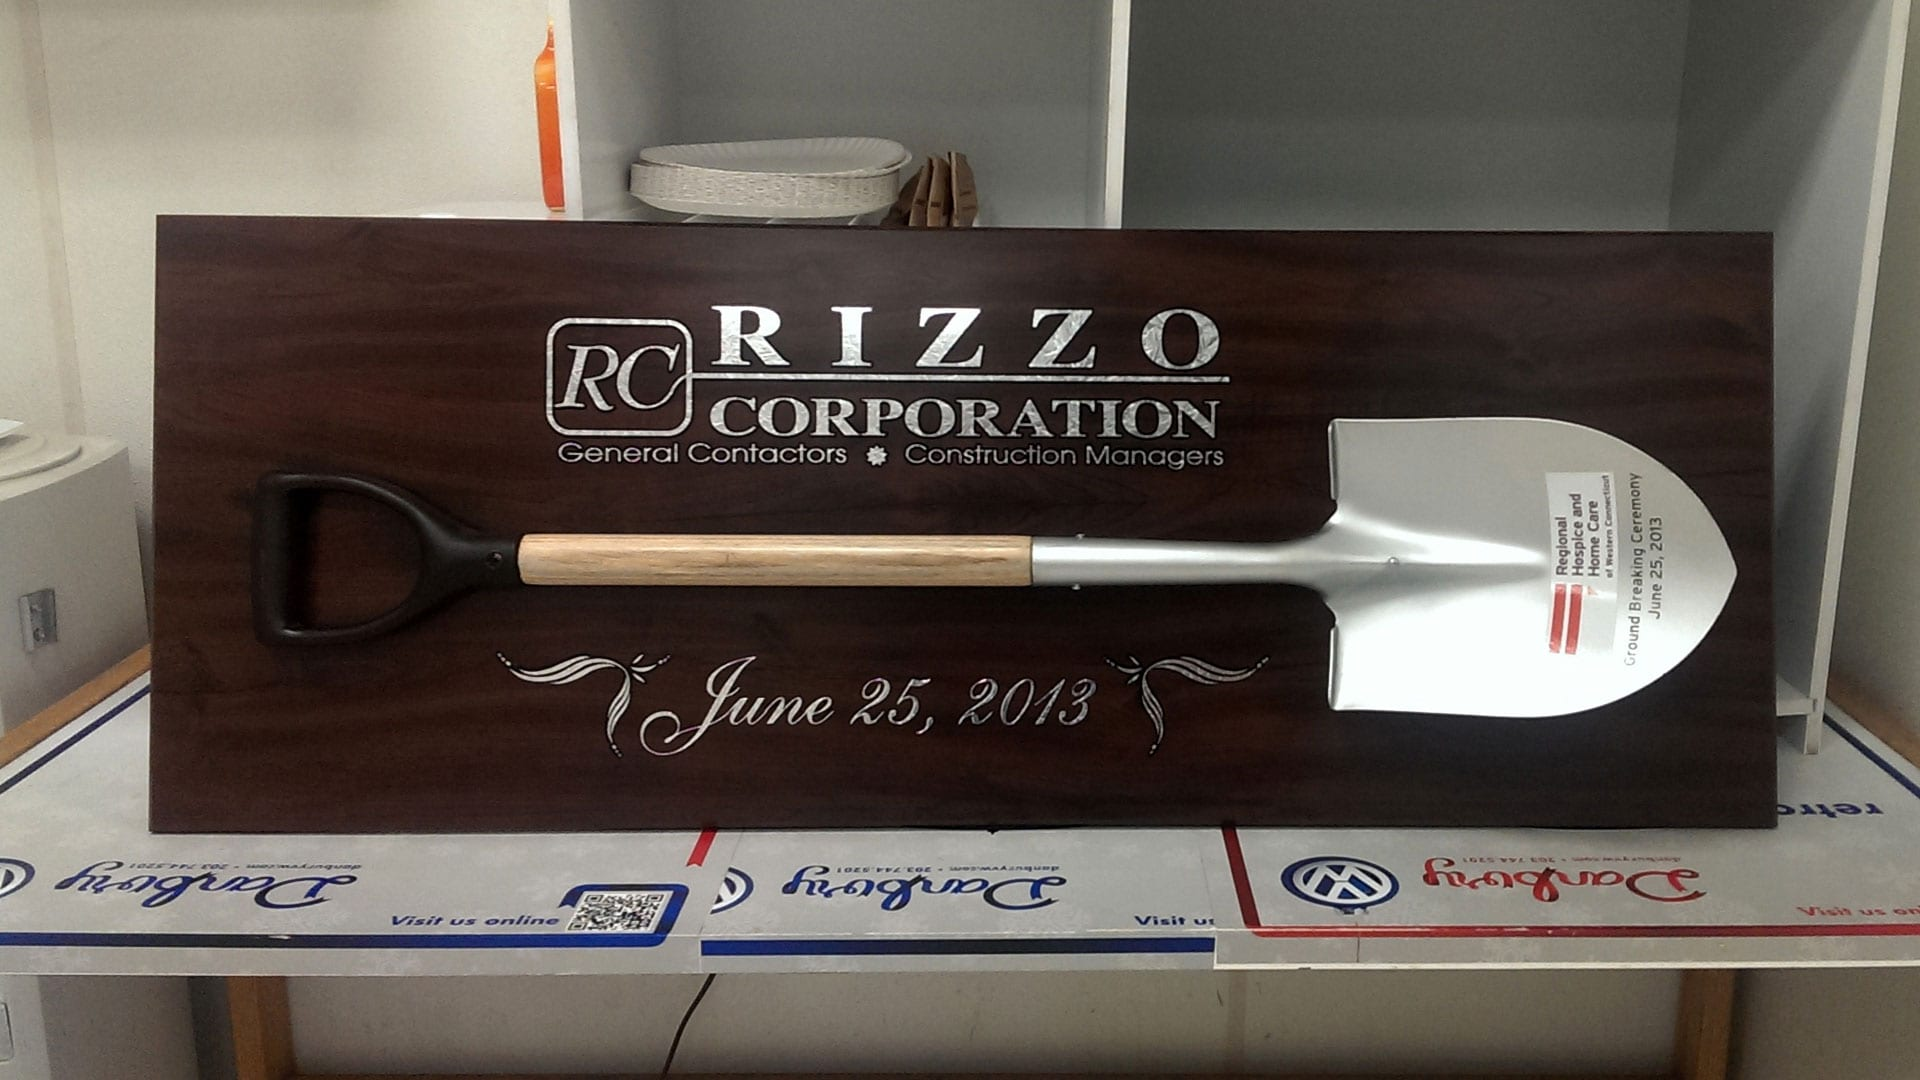 Rizzo Corporation - Freestanding Plaque